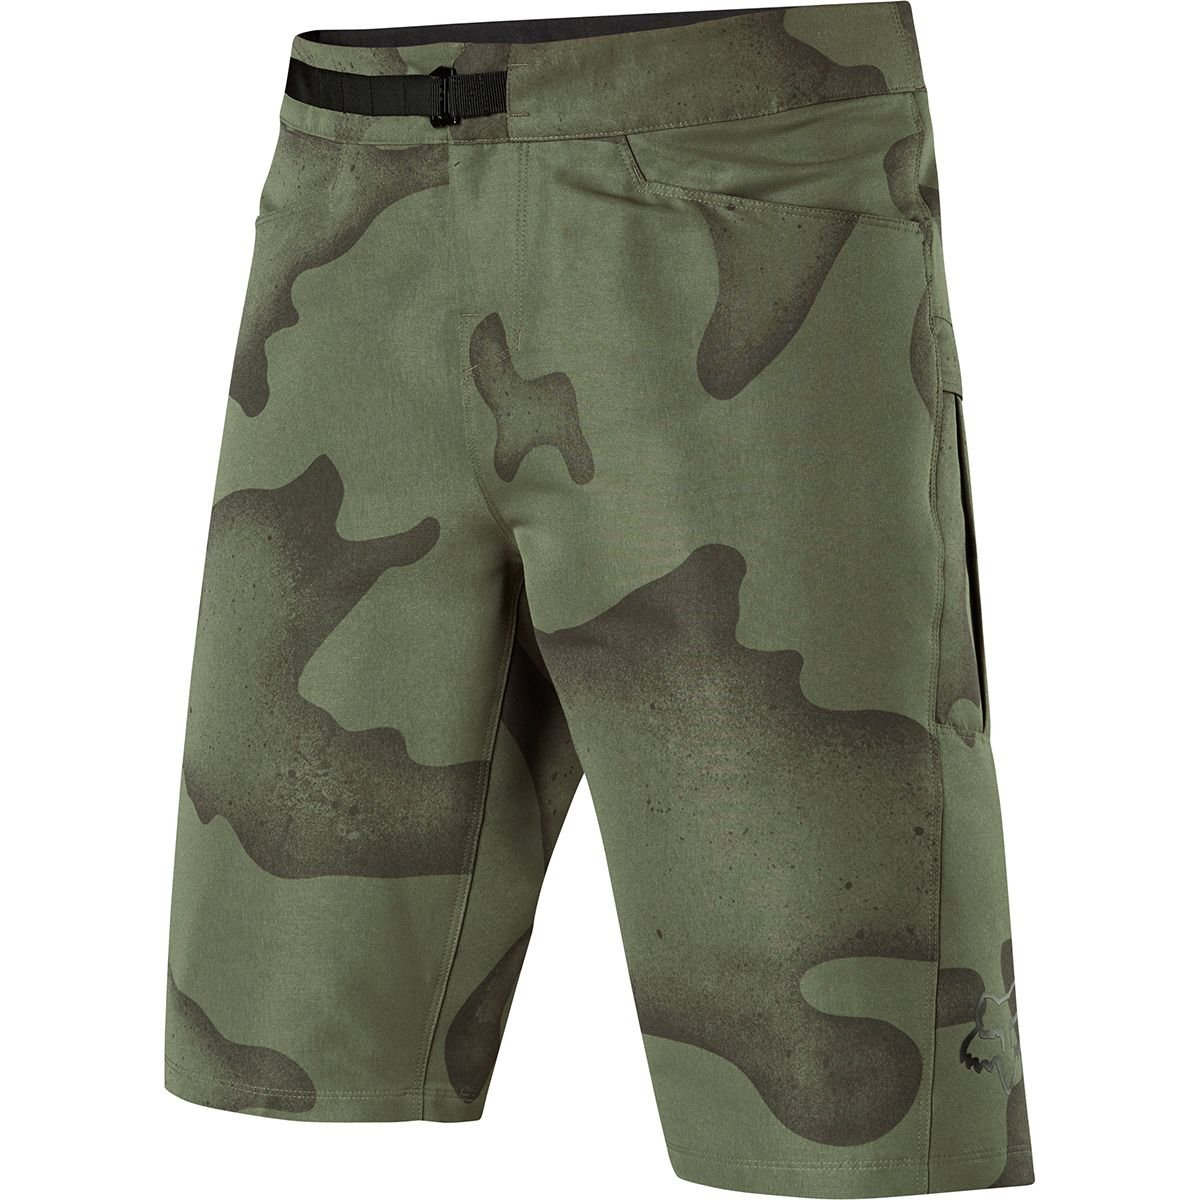 Fox Racing Ranger Cargo Print Short - Men's Green Camo, 36 by Fox Racing